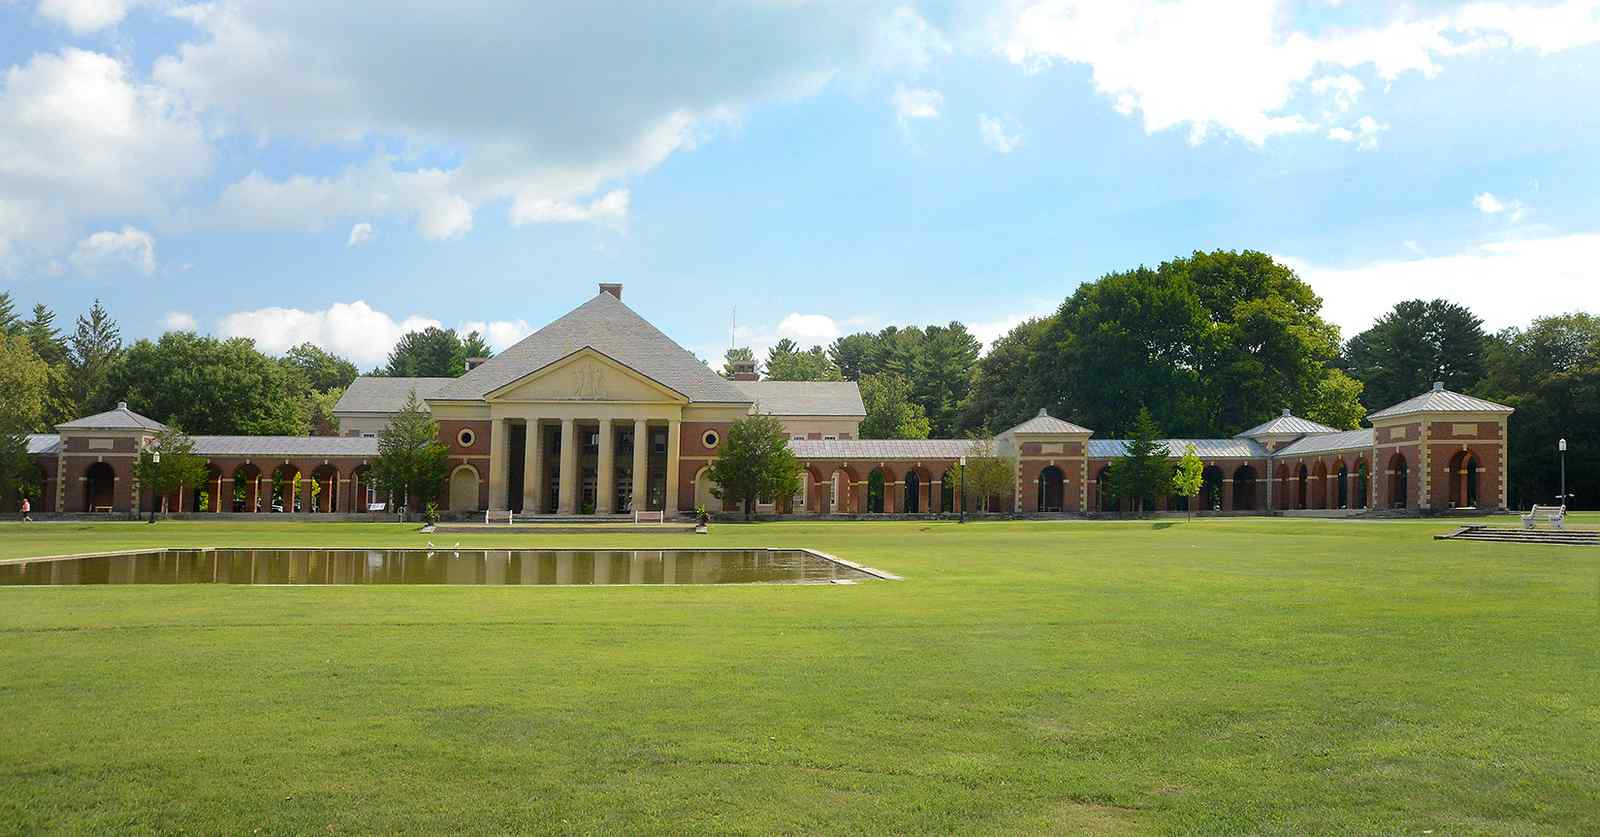 view of a large building in saratoga spa state park